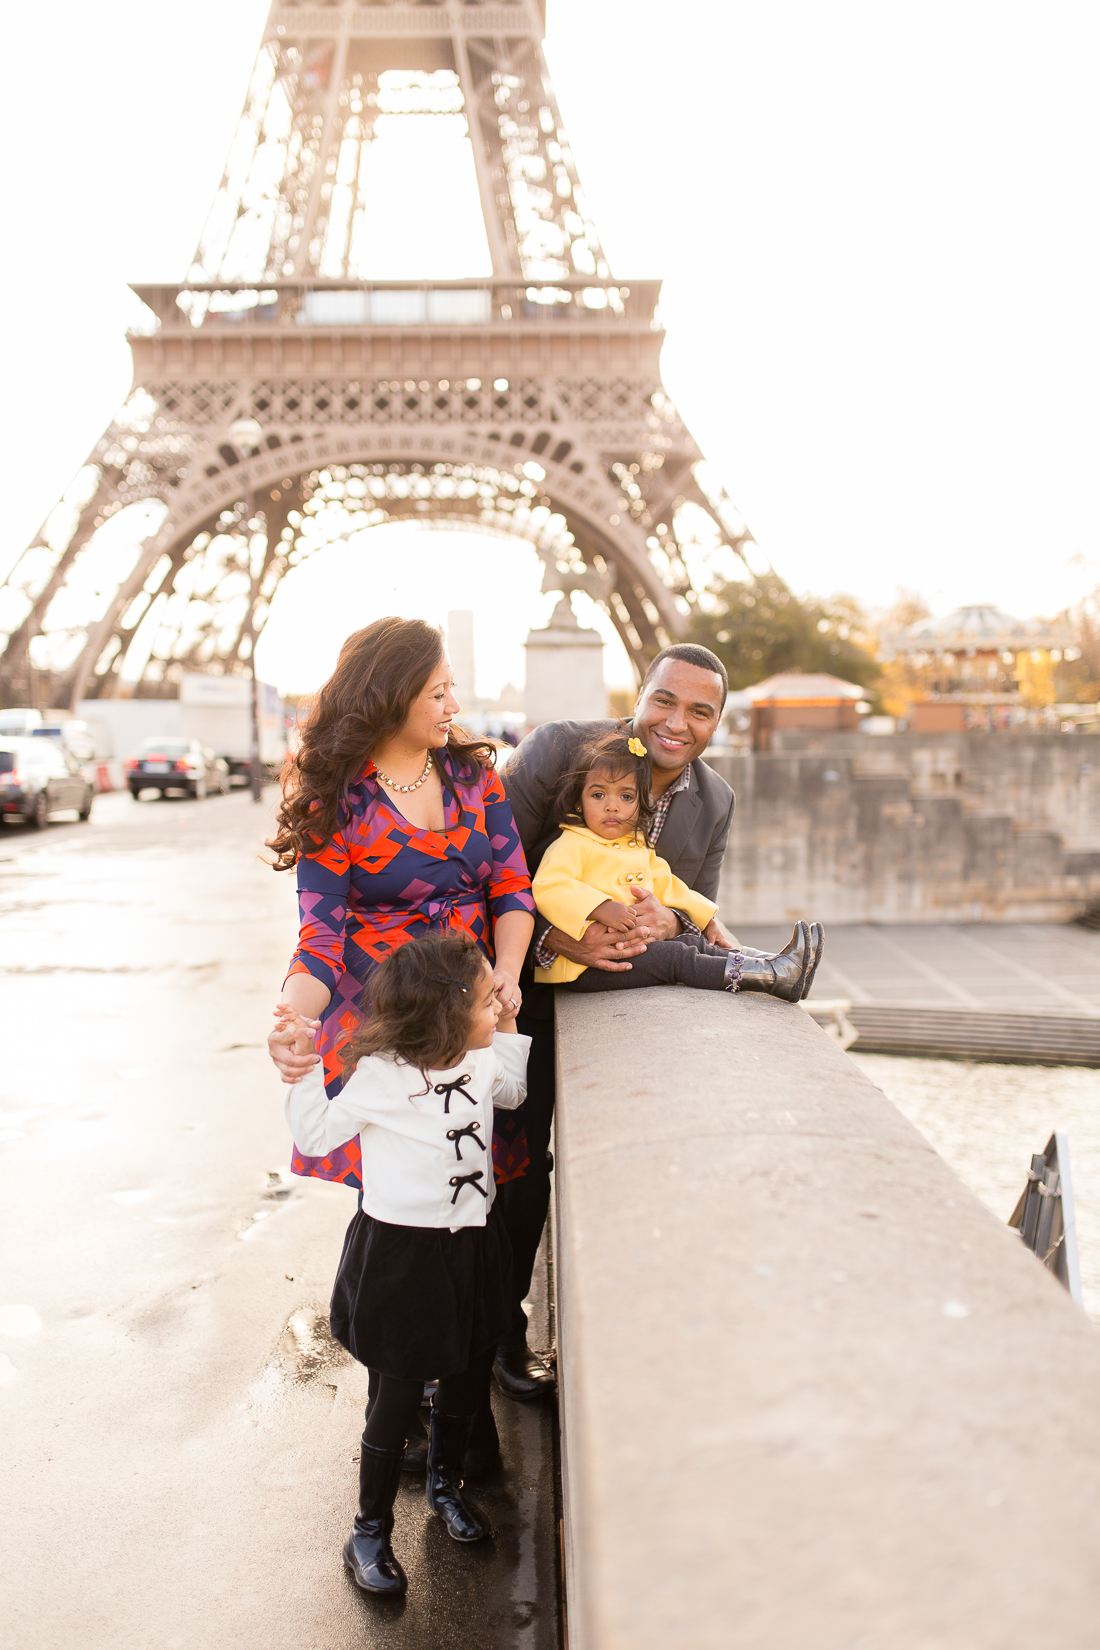 spring-fall-family-paris-eiffel-tower-photo-session-outfit-inspiratn-3